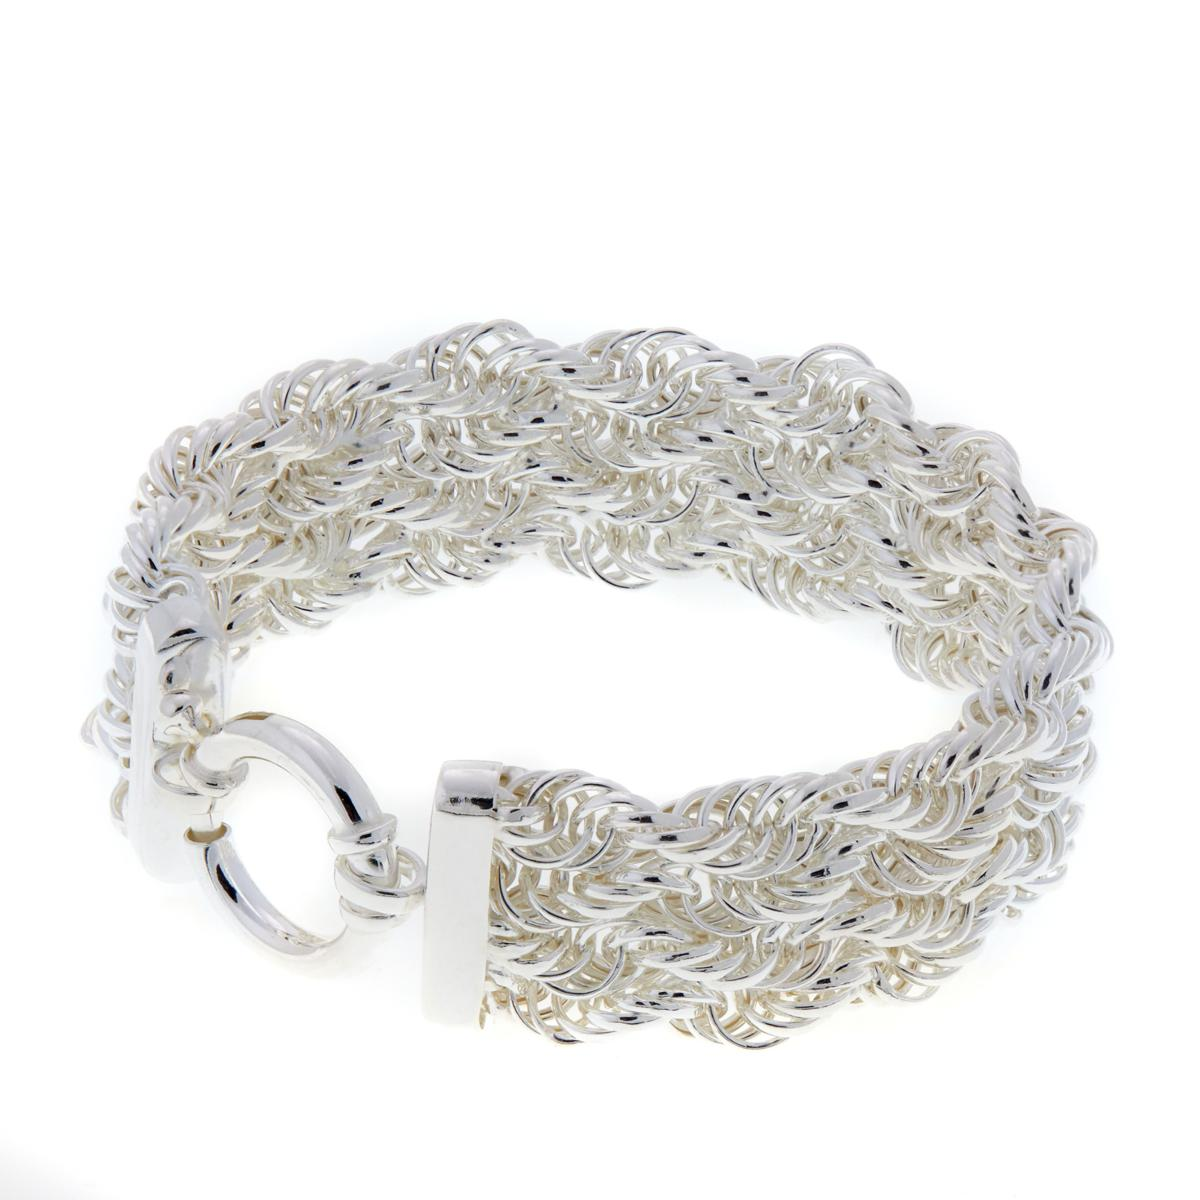 Sevilla Silver All Shiny Twisted Rope Chain Bracelet Real 925 Sterling Silver